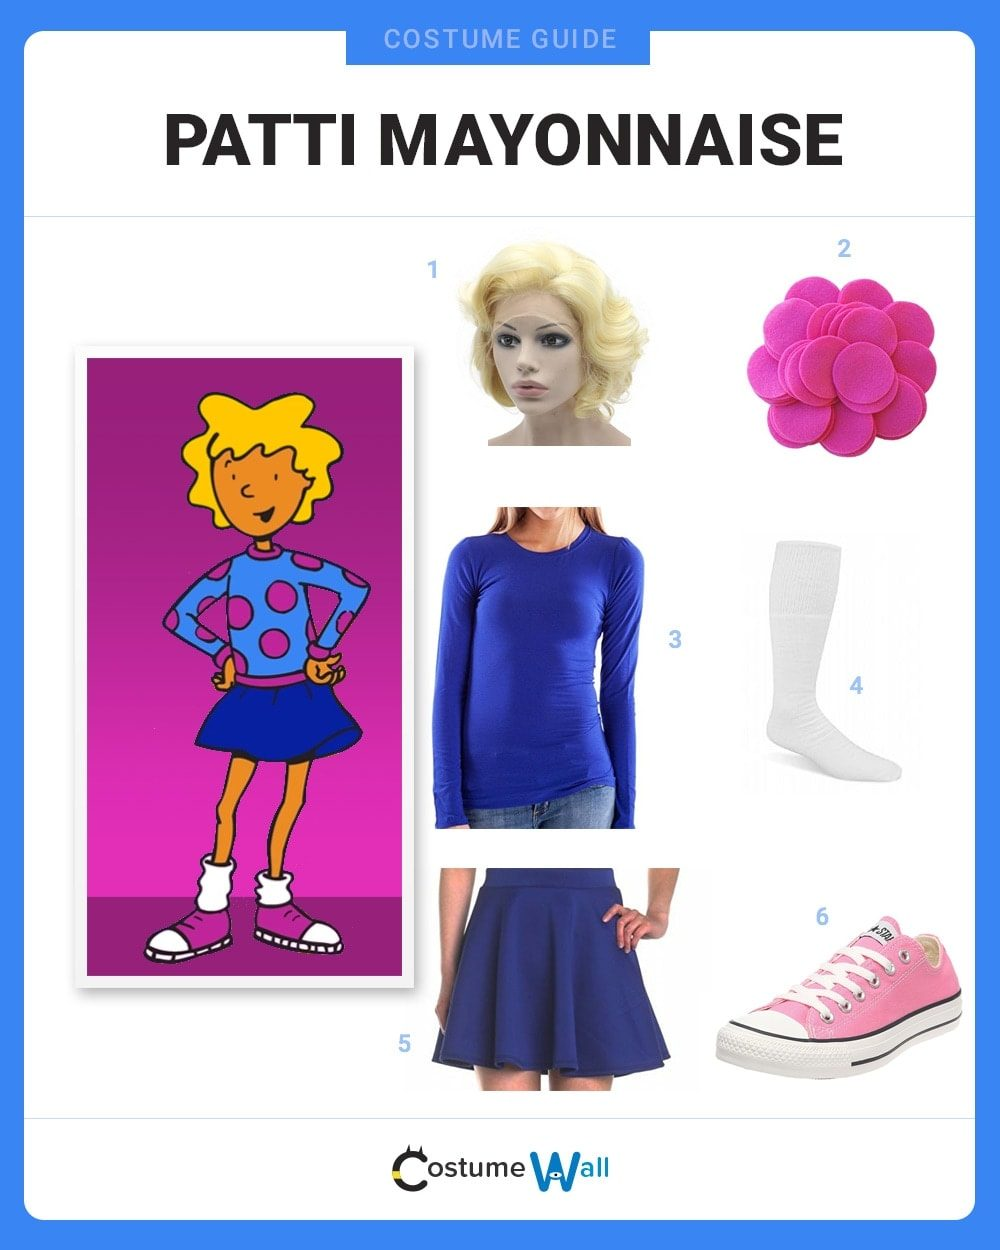 Patti Mayonnaise Costume Guide